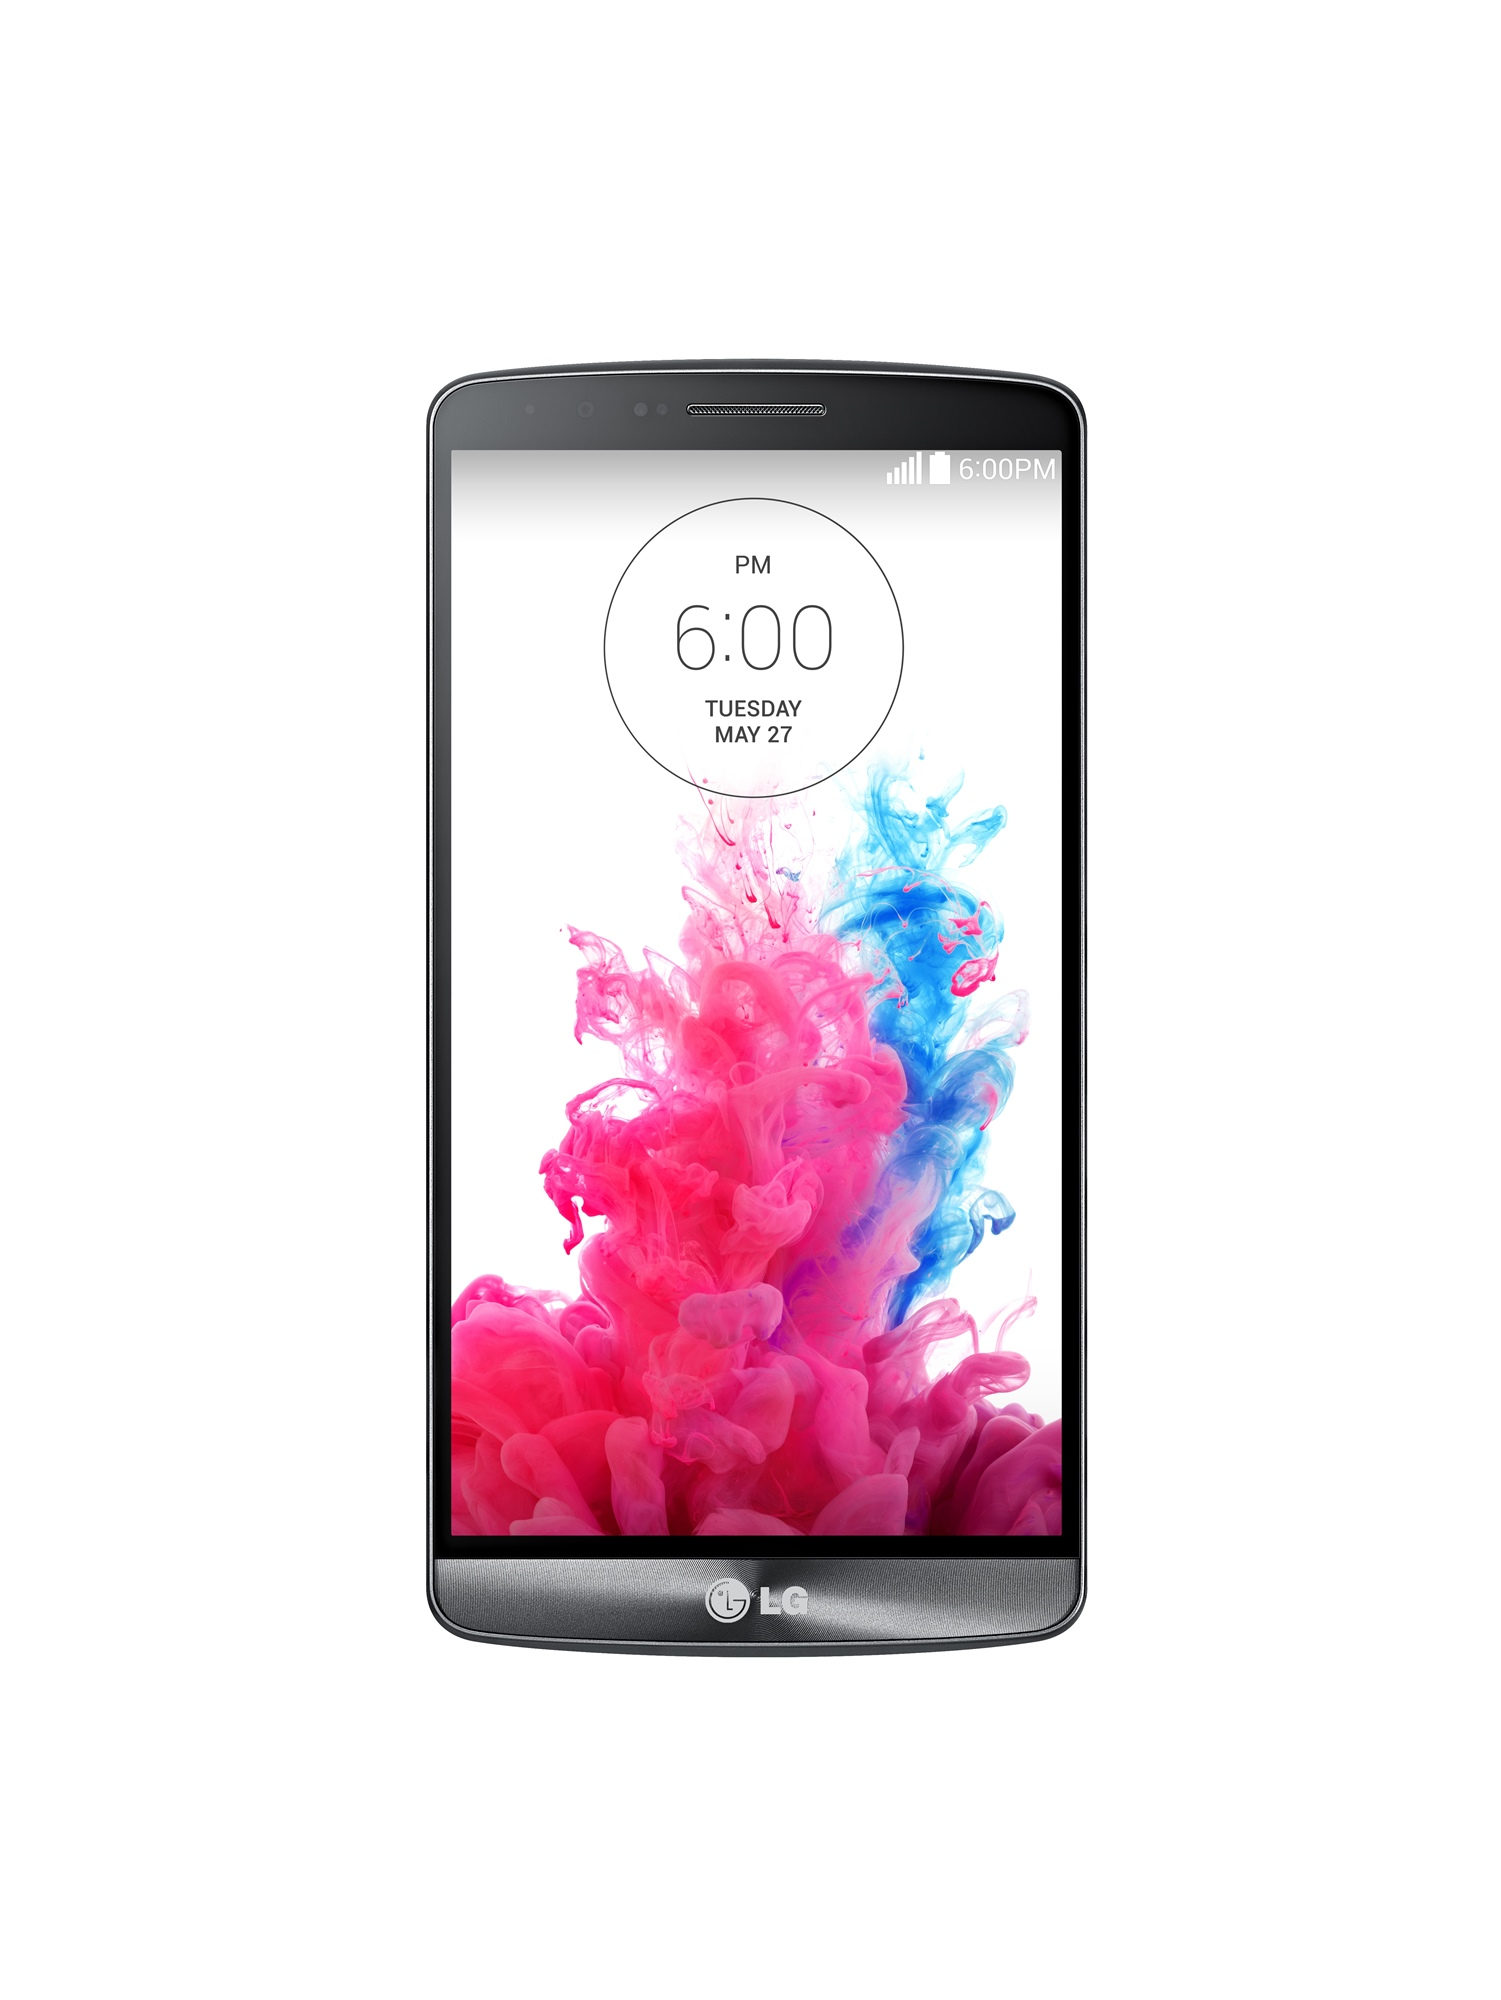 A front view of LG G3 showing its screen when locked.